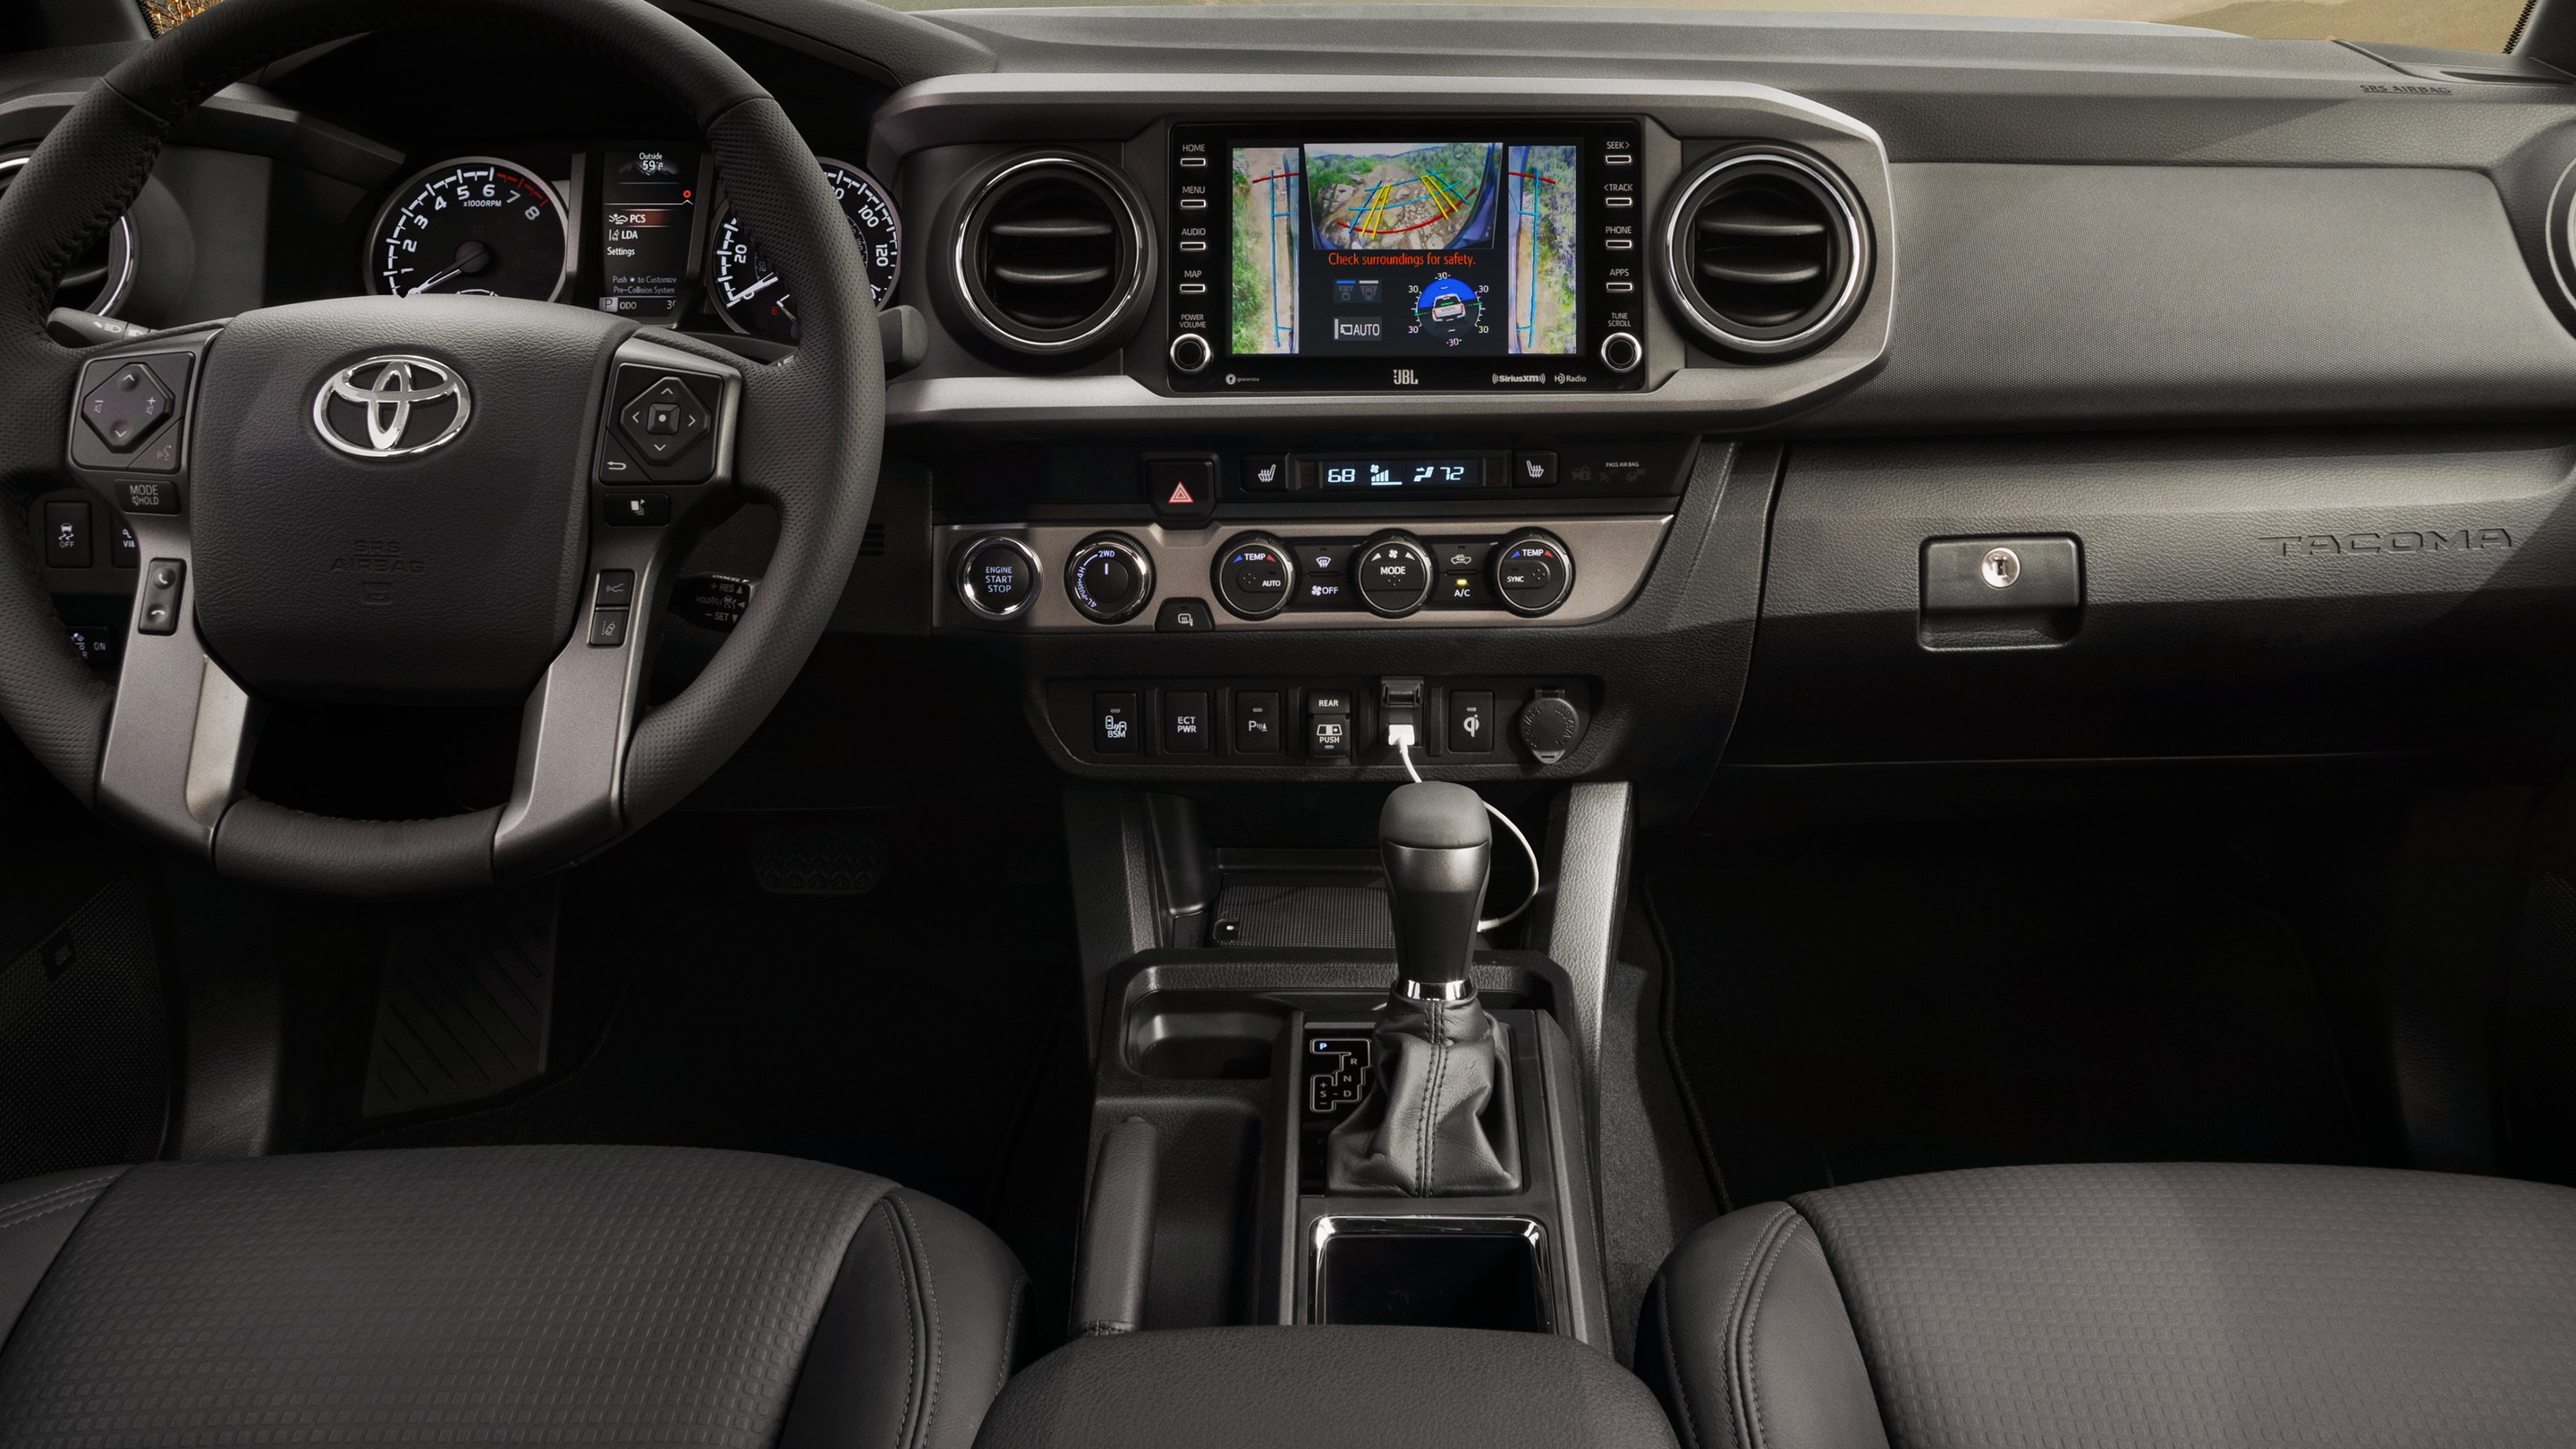 2020 Toyota Tacoma Front Interior Dashboard Picture